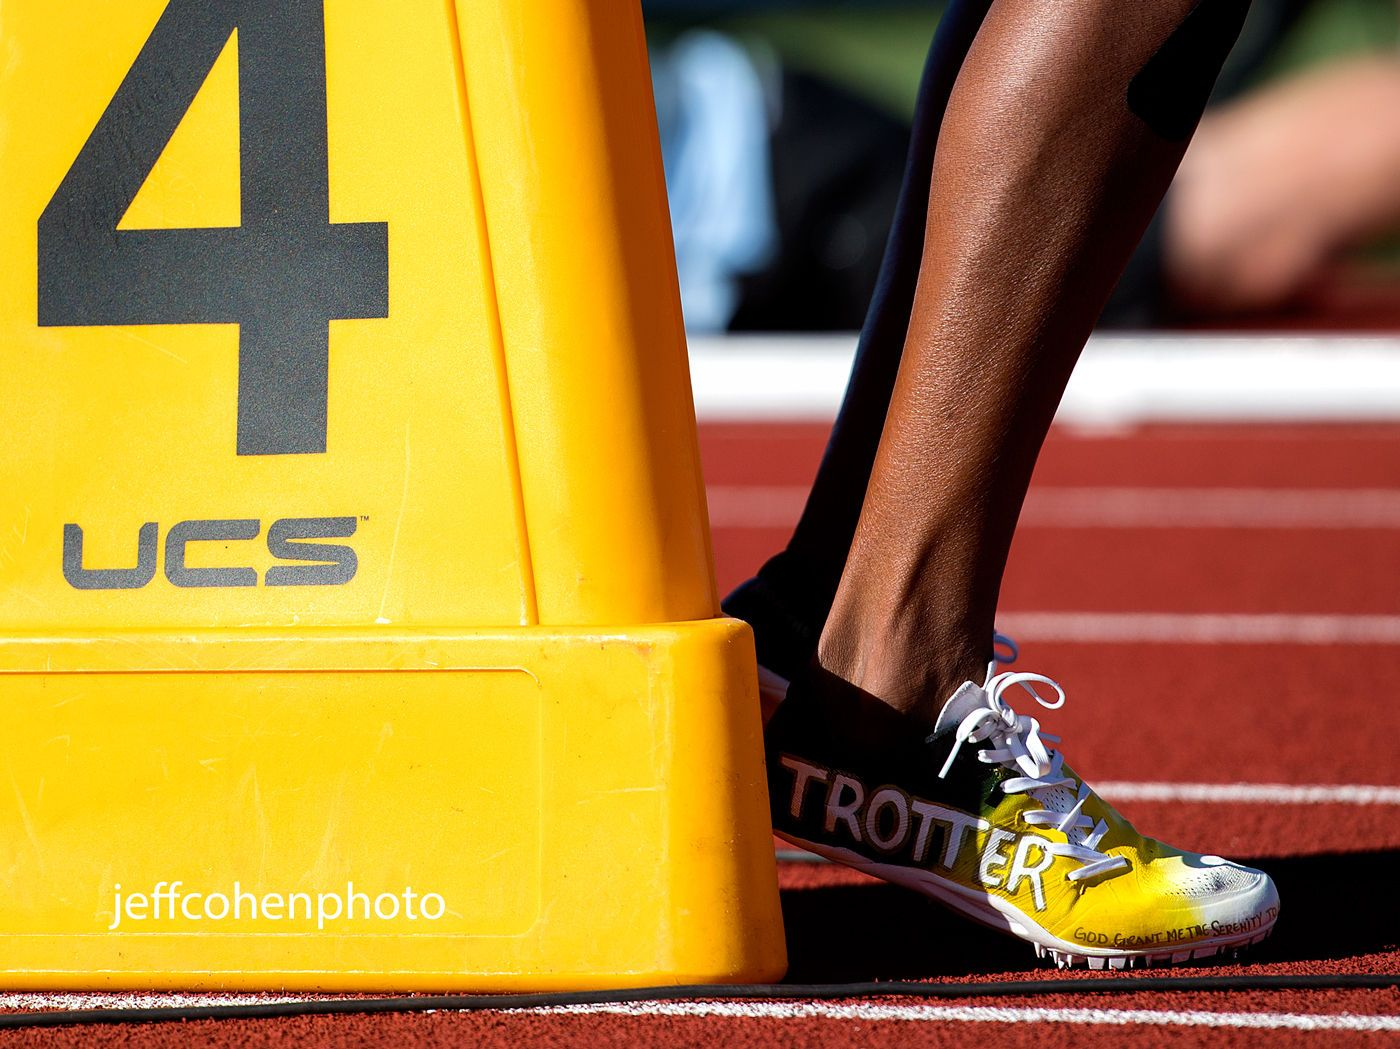 1r2016_oly_trials_day_1_trotter_spikes_jeff_cohen_photo_2102_web.jpg